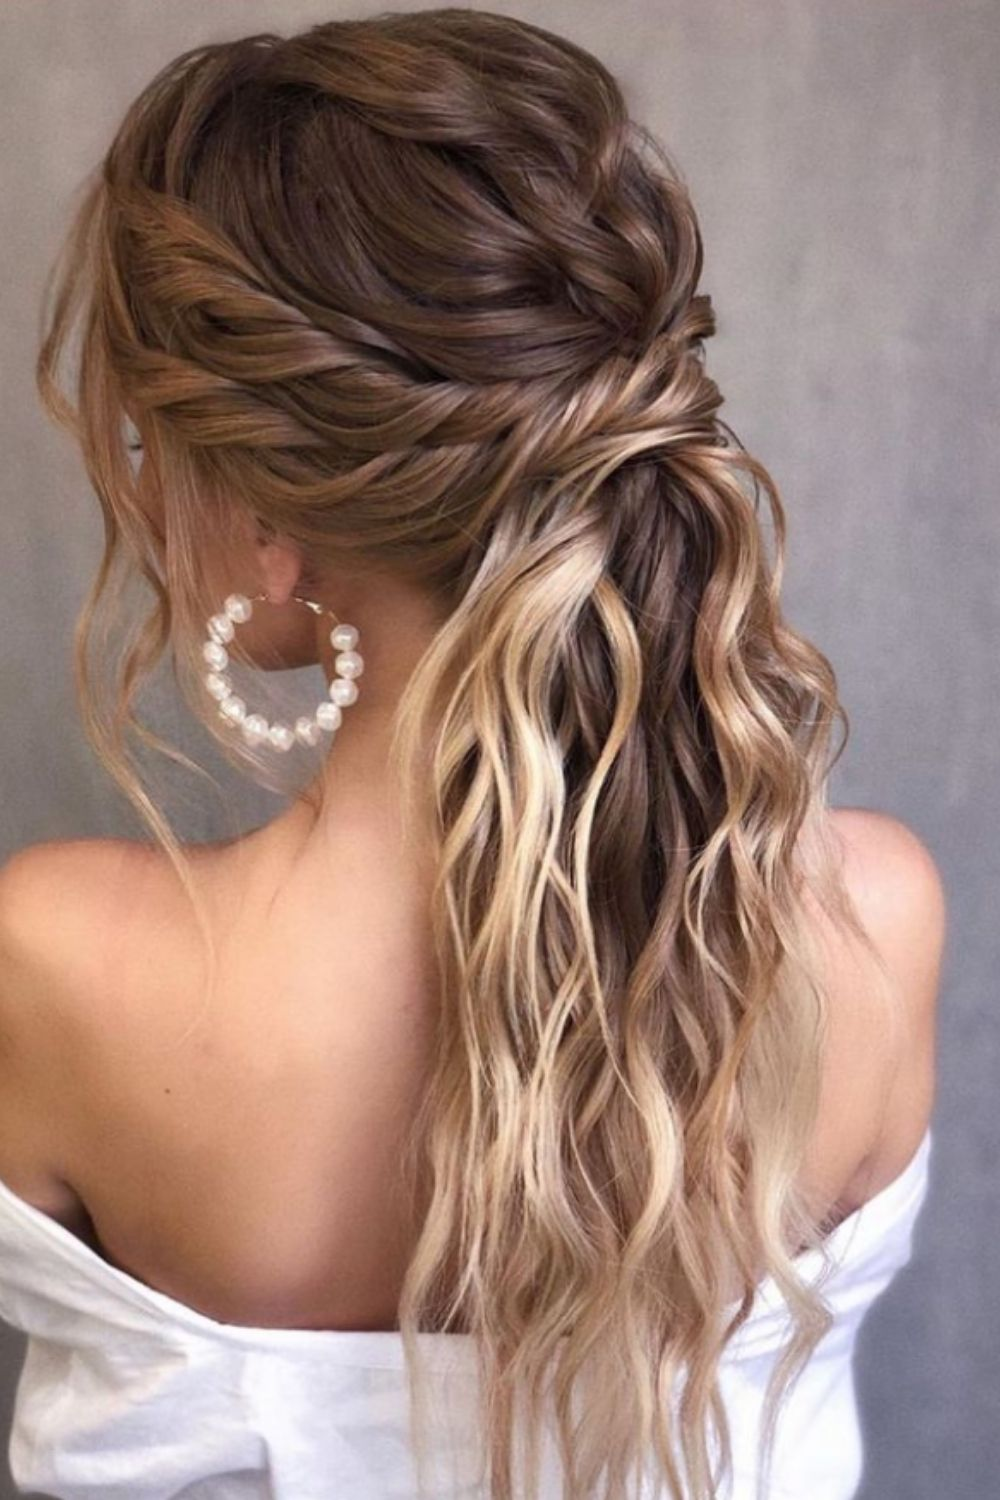 Best Hairstyles For Thin Hair To Try In Summer 2021!